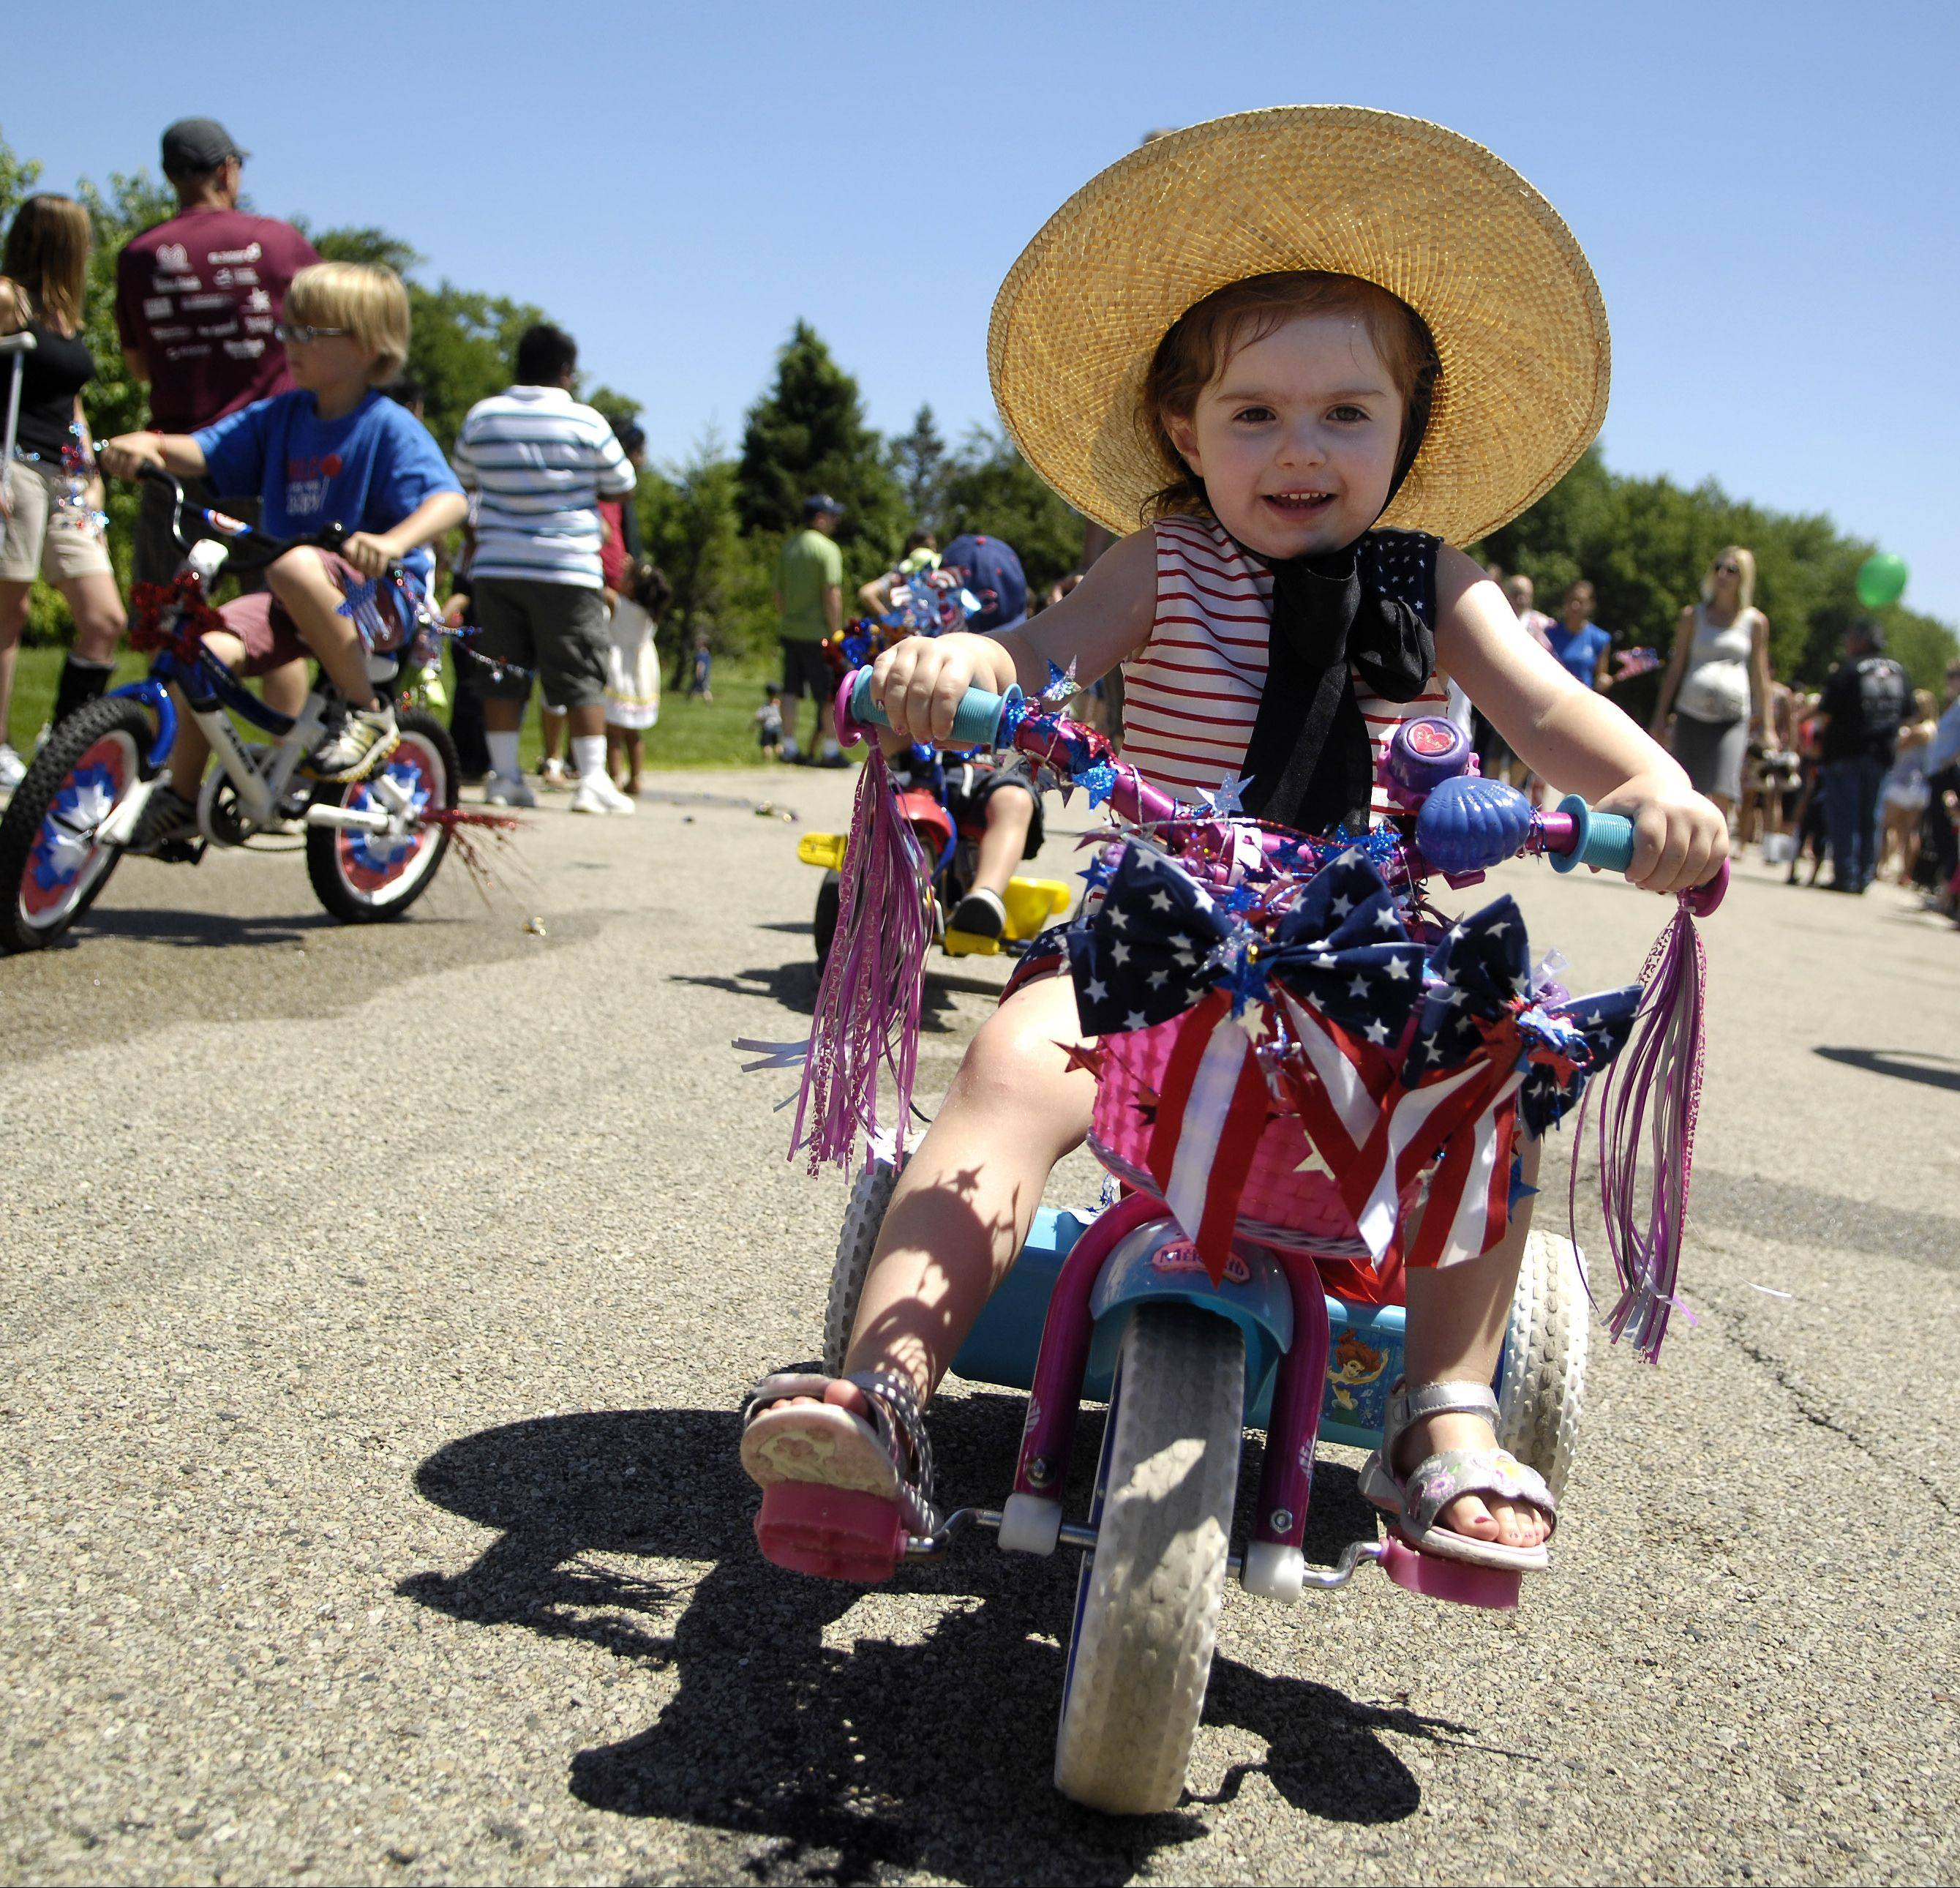 Chloe Coffey, 3, of Lake in the Hills rides her decorated trike during Sleepy Hollow's Fourth of July parade. The village will hold an all-day celebration on the Fourth of July, starting with a fun run and finishing with fireworks.